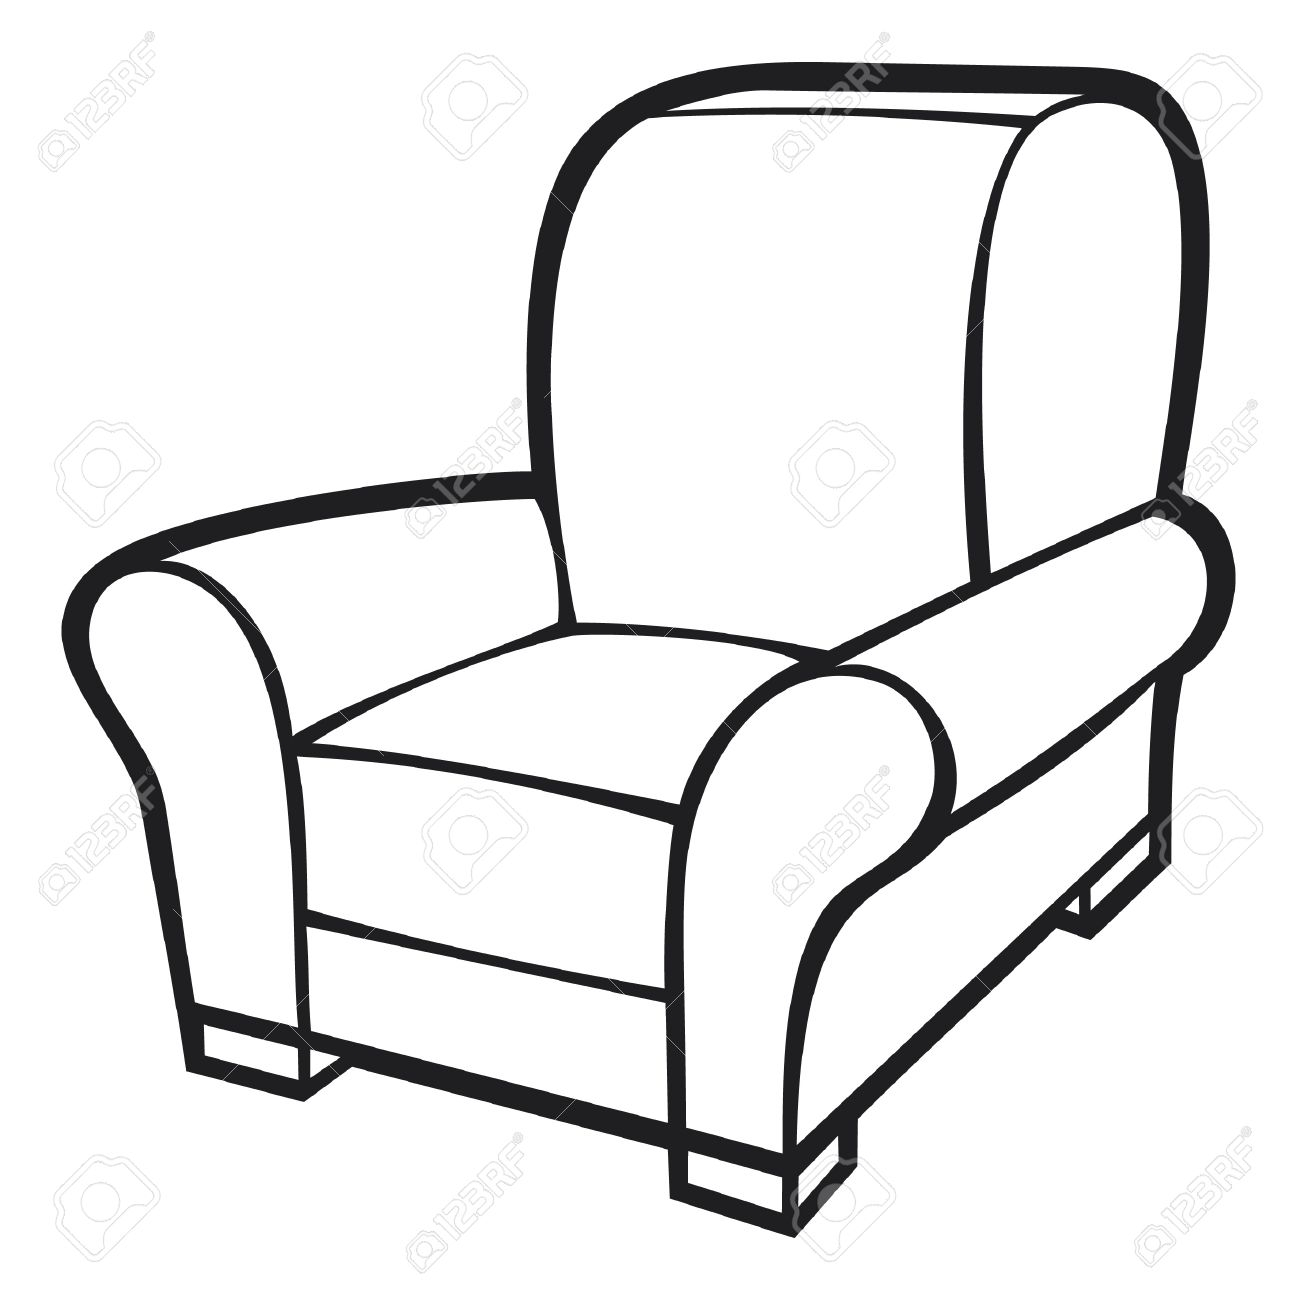 1297x1300 Sofa Pretty Sofa Chair Clip Art Clipart Sofa Chair Clip Art Sofa